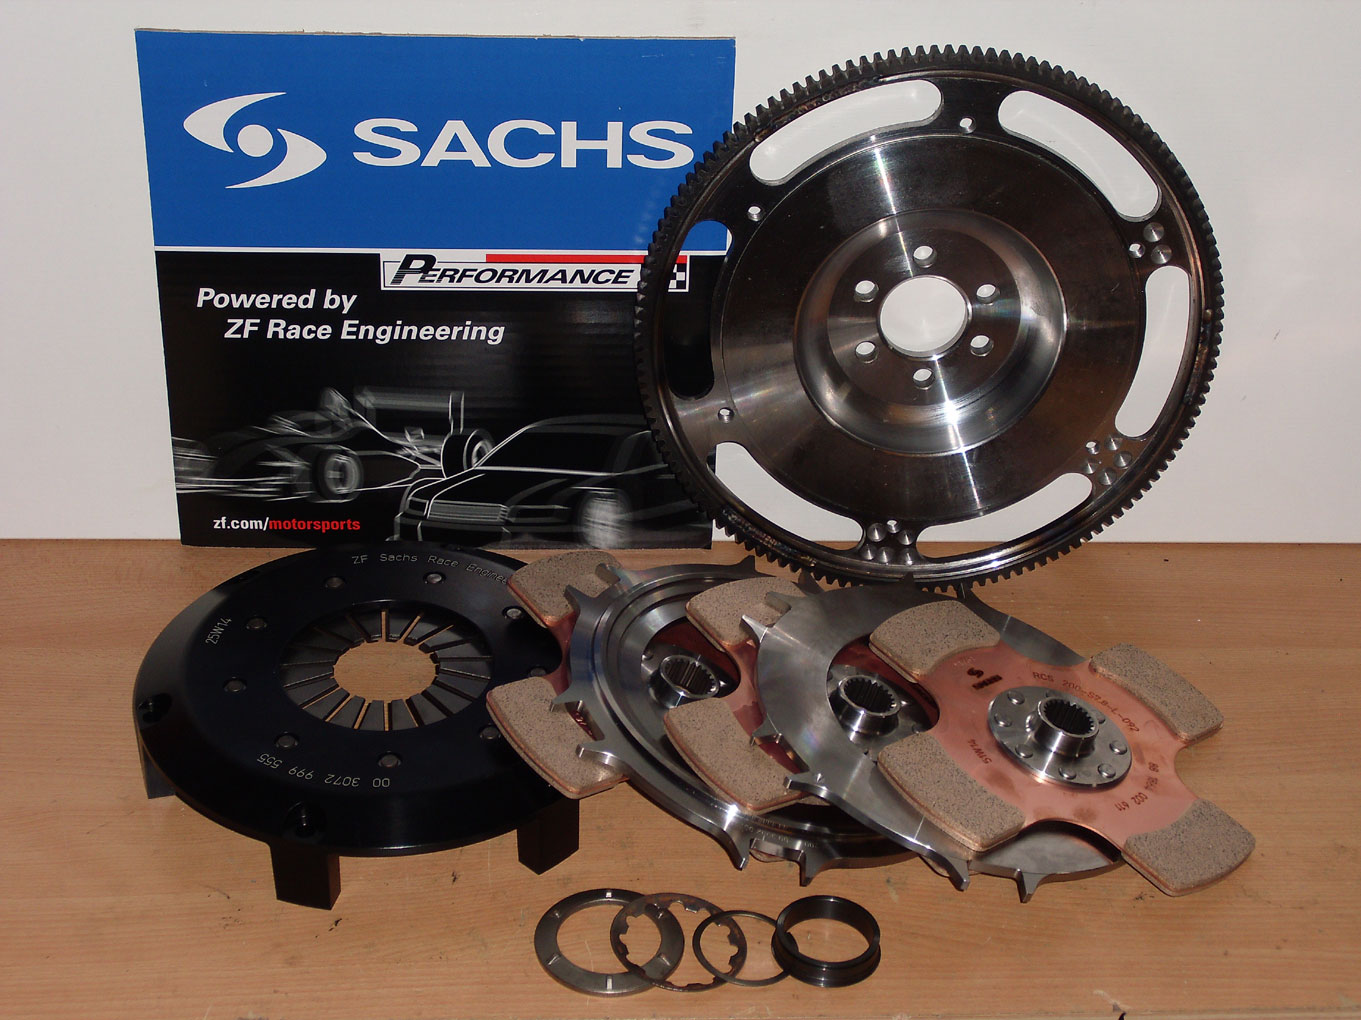 clutch kit reinforced tripple-disc race clutch flywheel VW Golf R32 mk4  Turbo 3 2 V6 VR6 24V BML BFH Audi TT 3 2 8N 1300NM+ Sachs Race RCS200